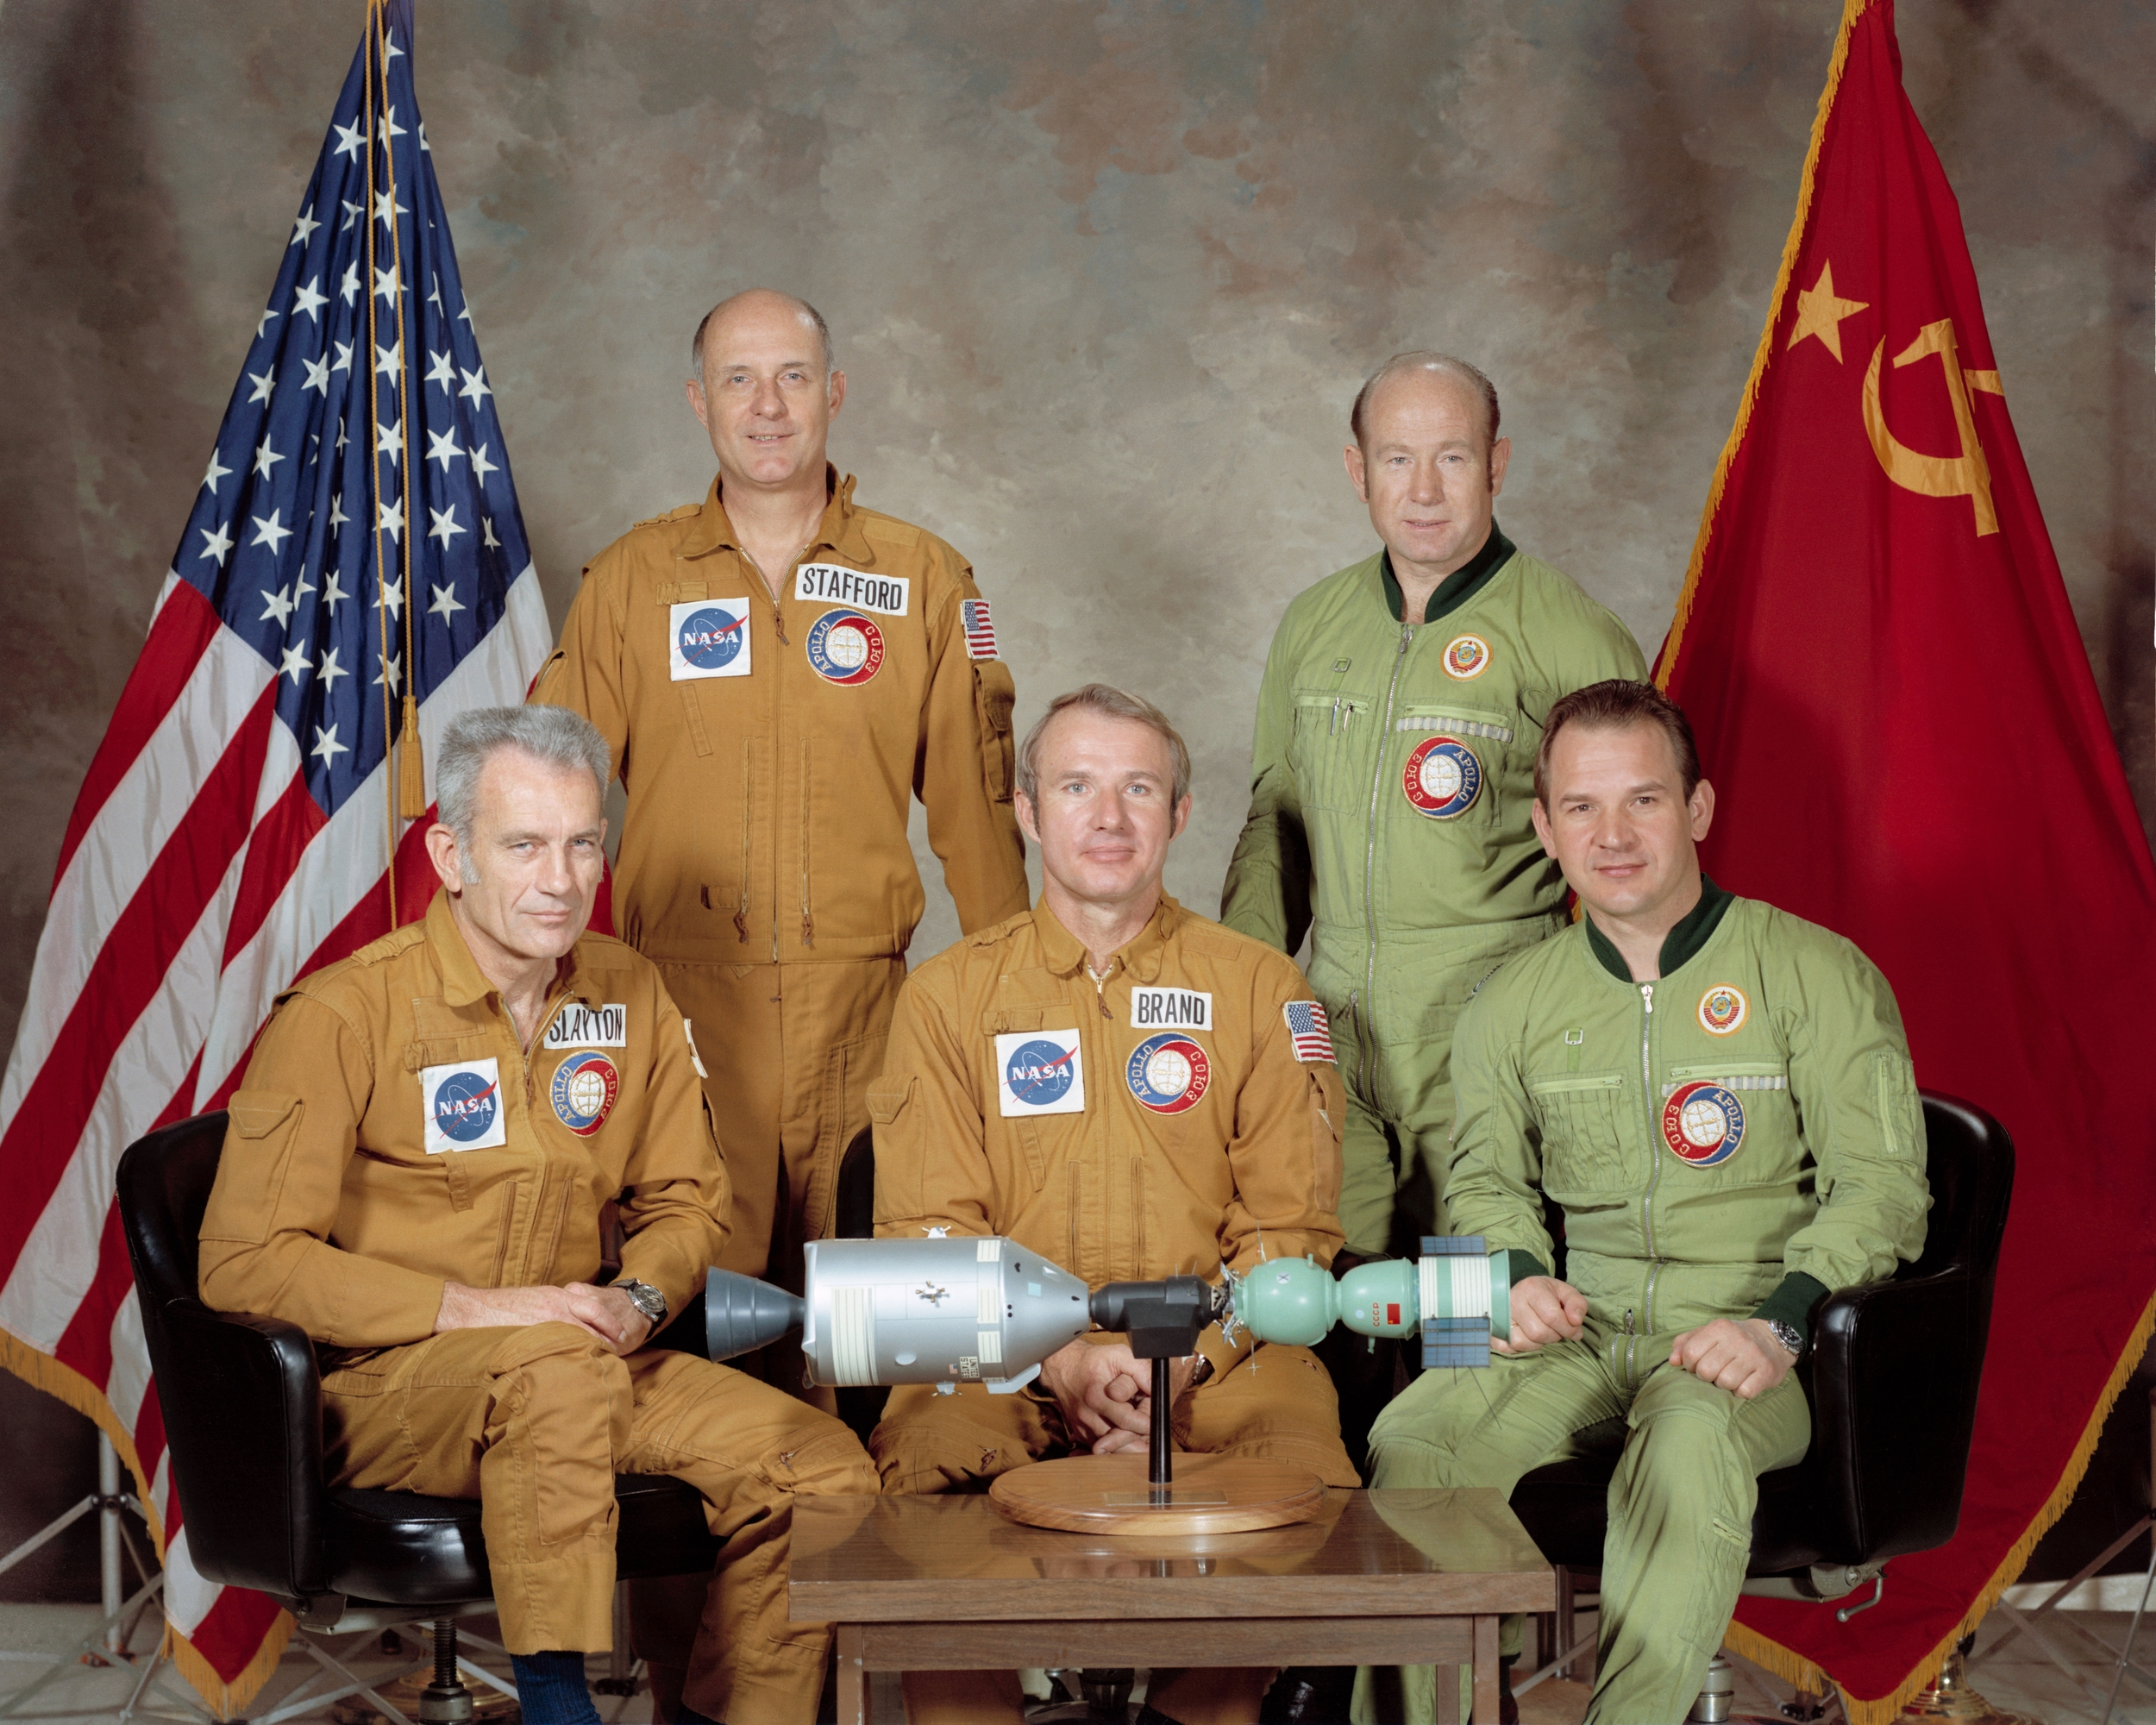 The joint U.S.-Soviet crew of the 1975 Apollo-Soyuz Test Project, the first two-nation cooperative space mission.